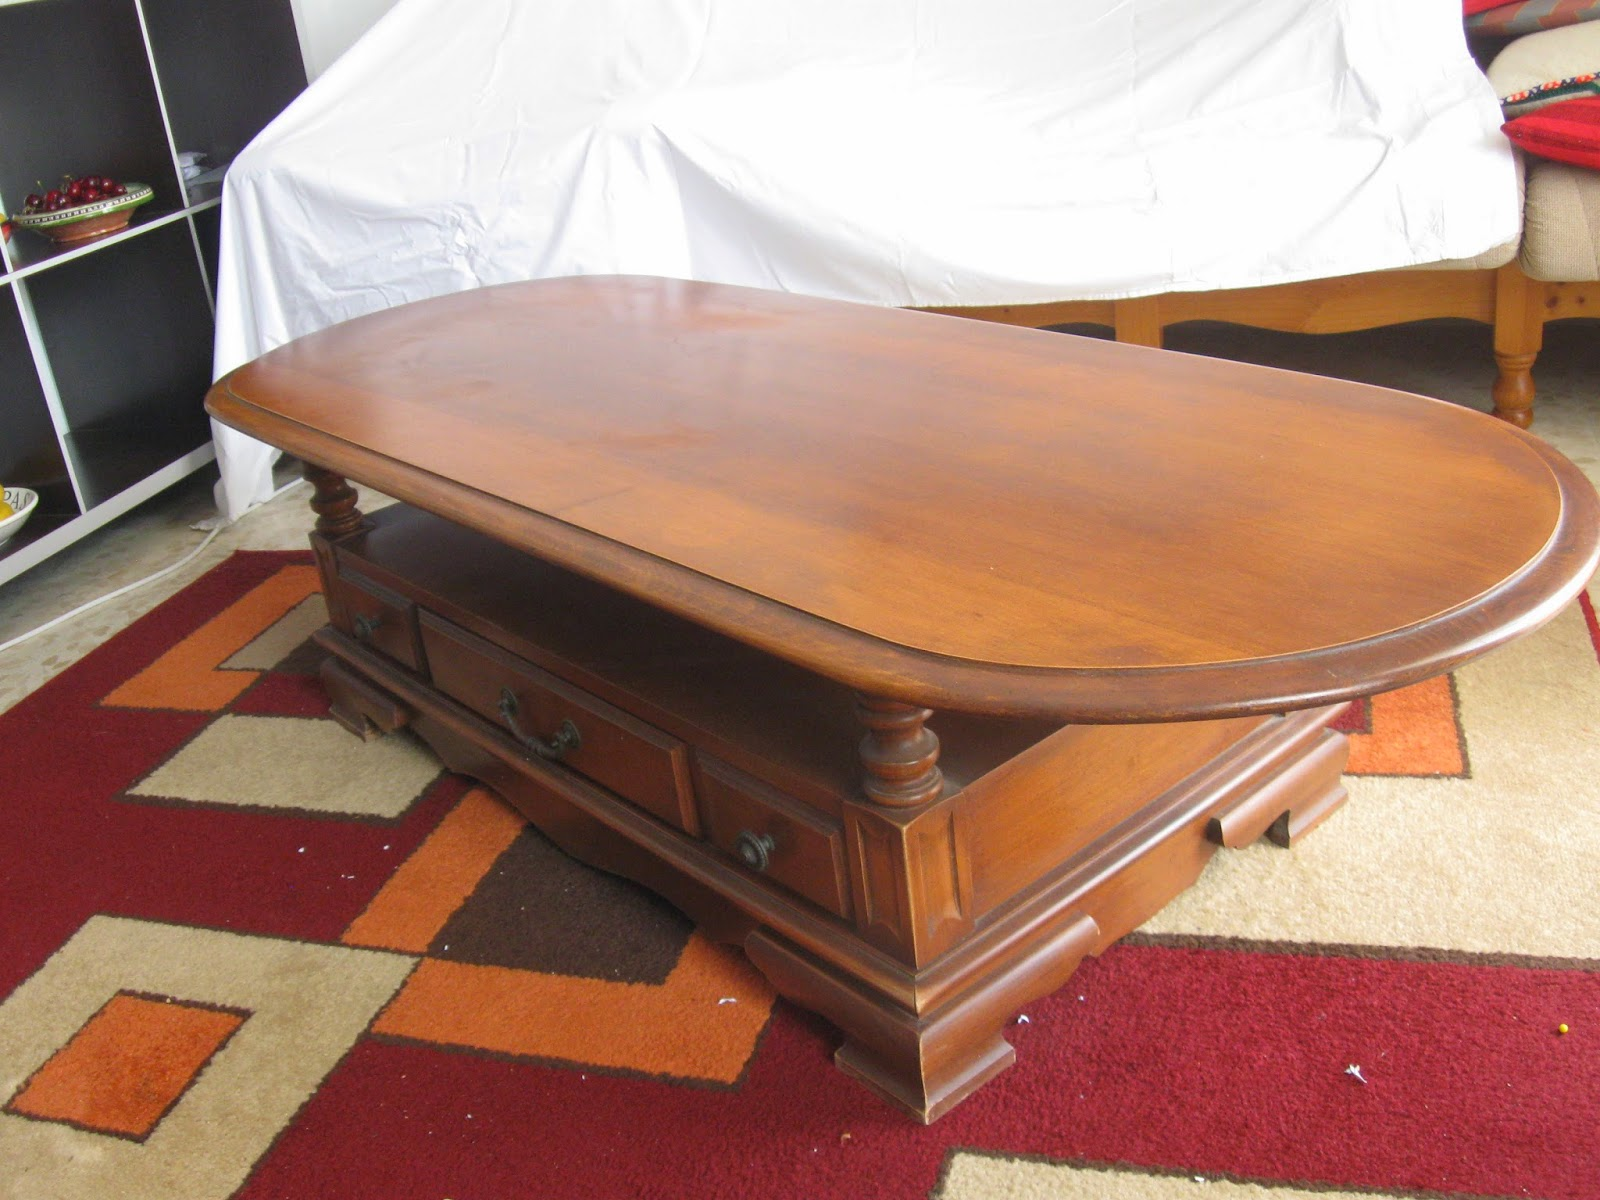 Digame for sale beautiful large coffee table for Coffee tables 24 high